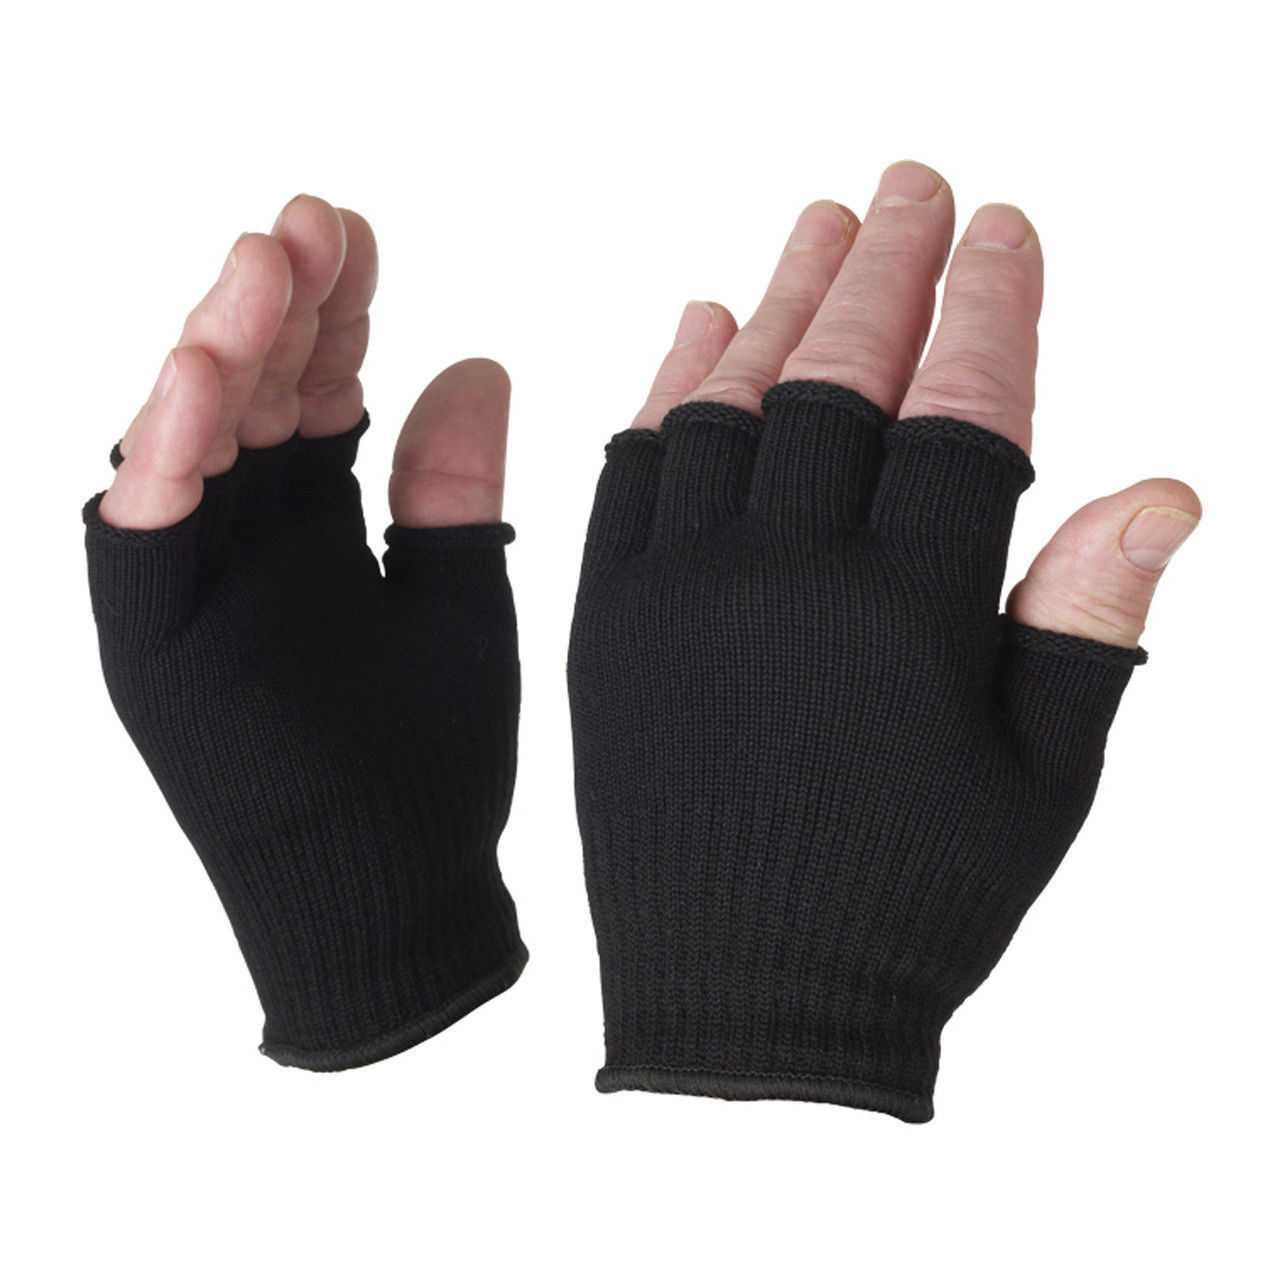 Fingerless Gloves Wholesale | Black Knit Bulk 12PK 5075D